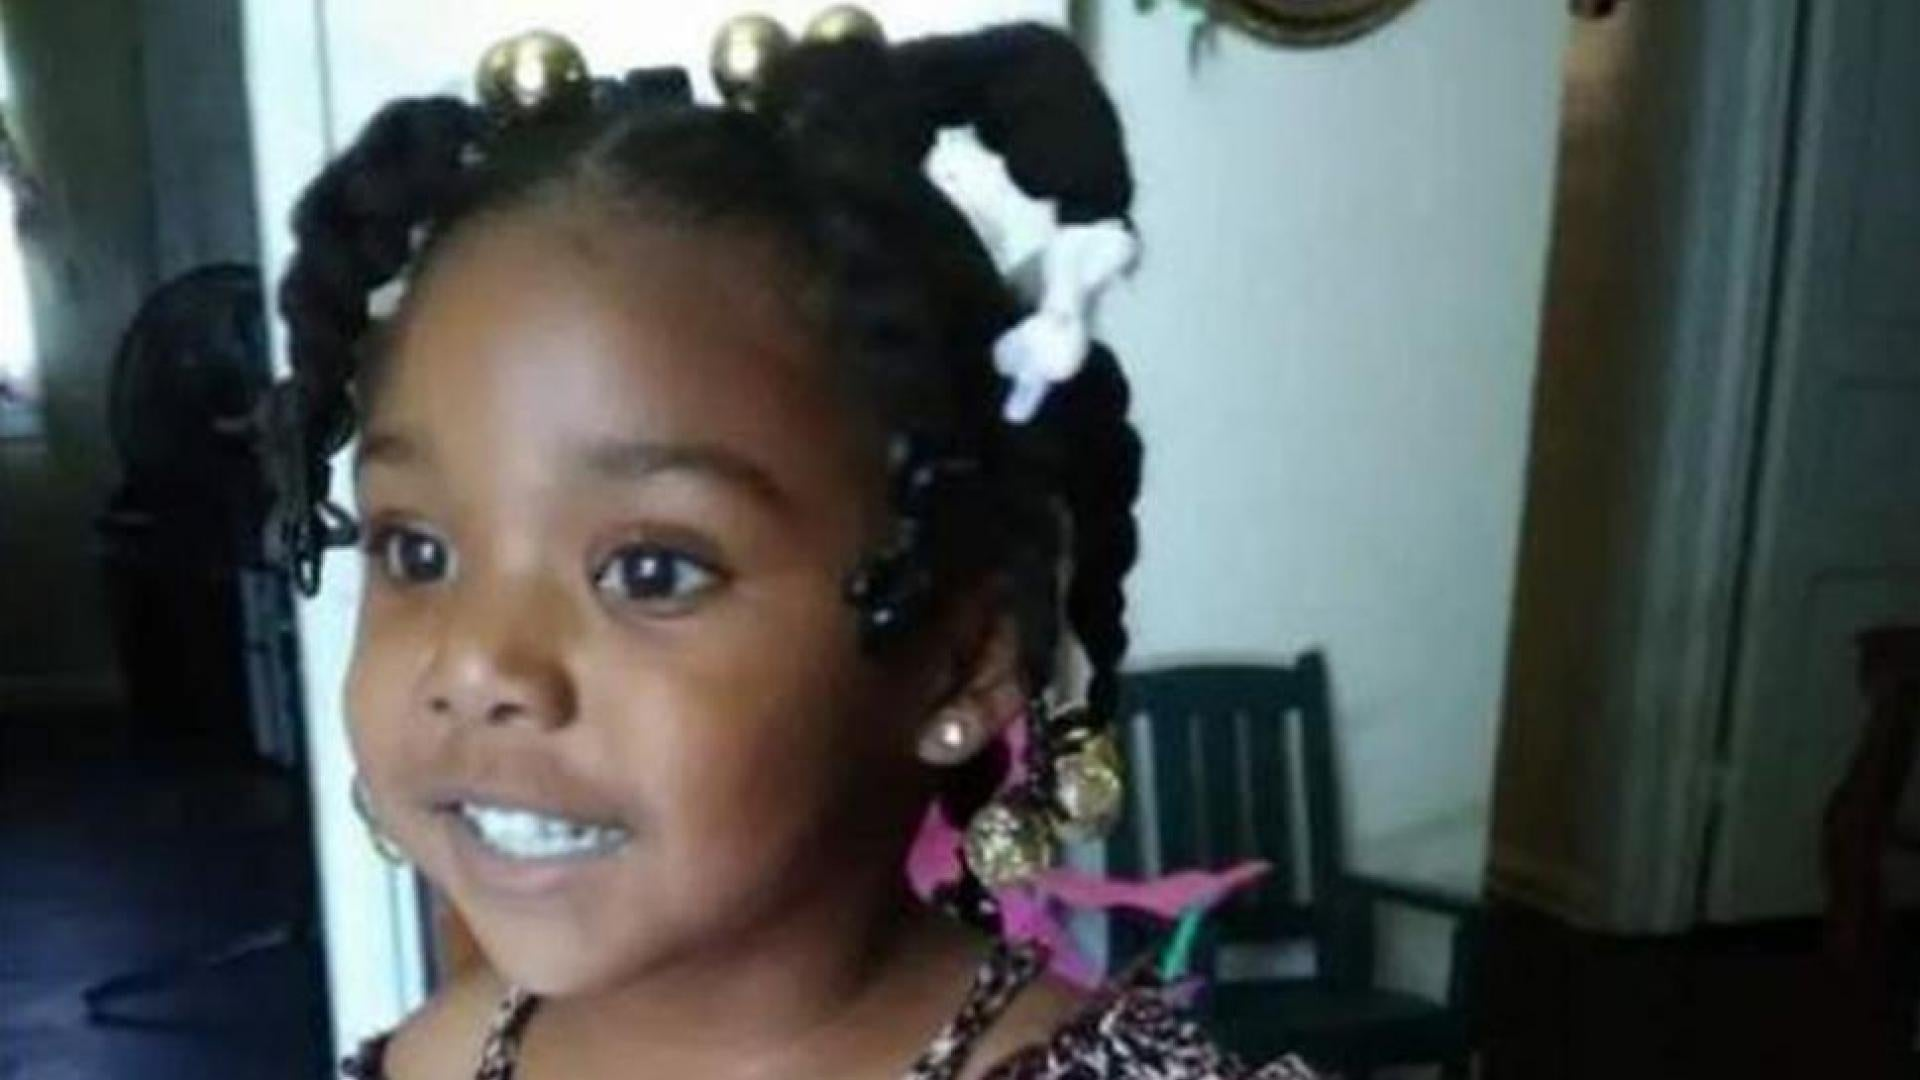 The little girl disappeared from a birthday party in October.